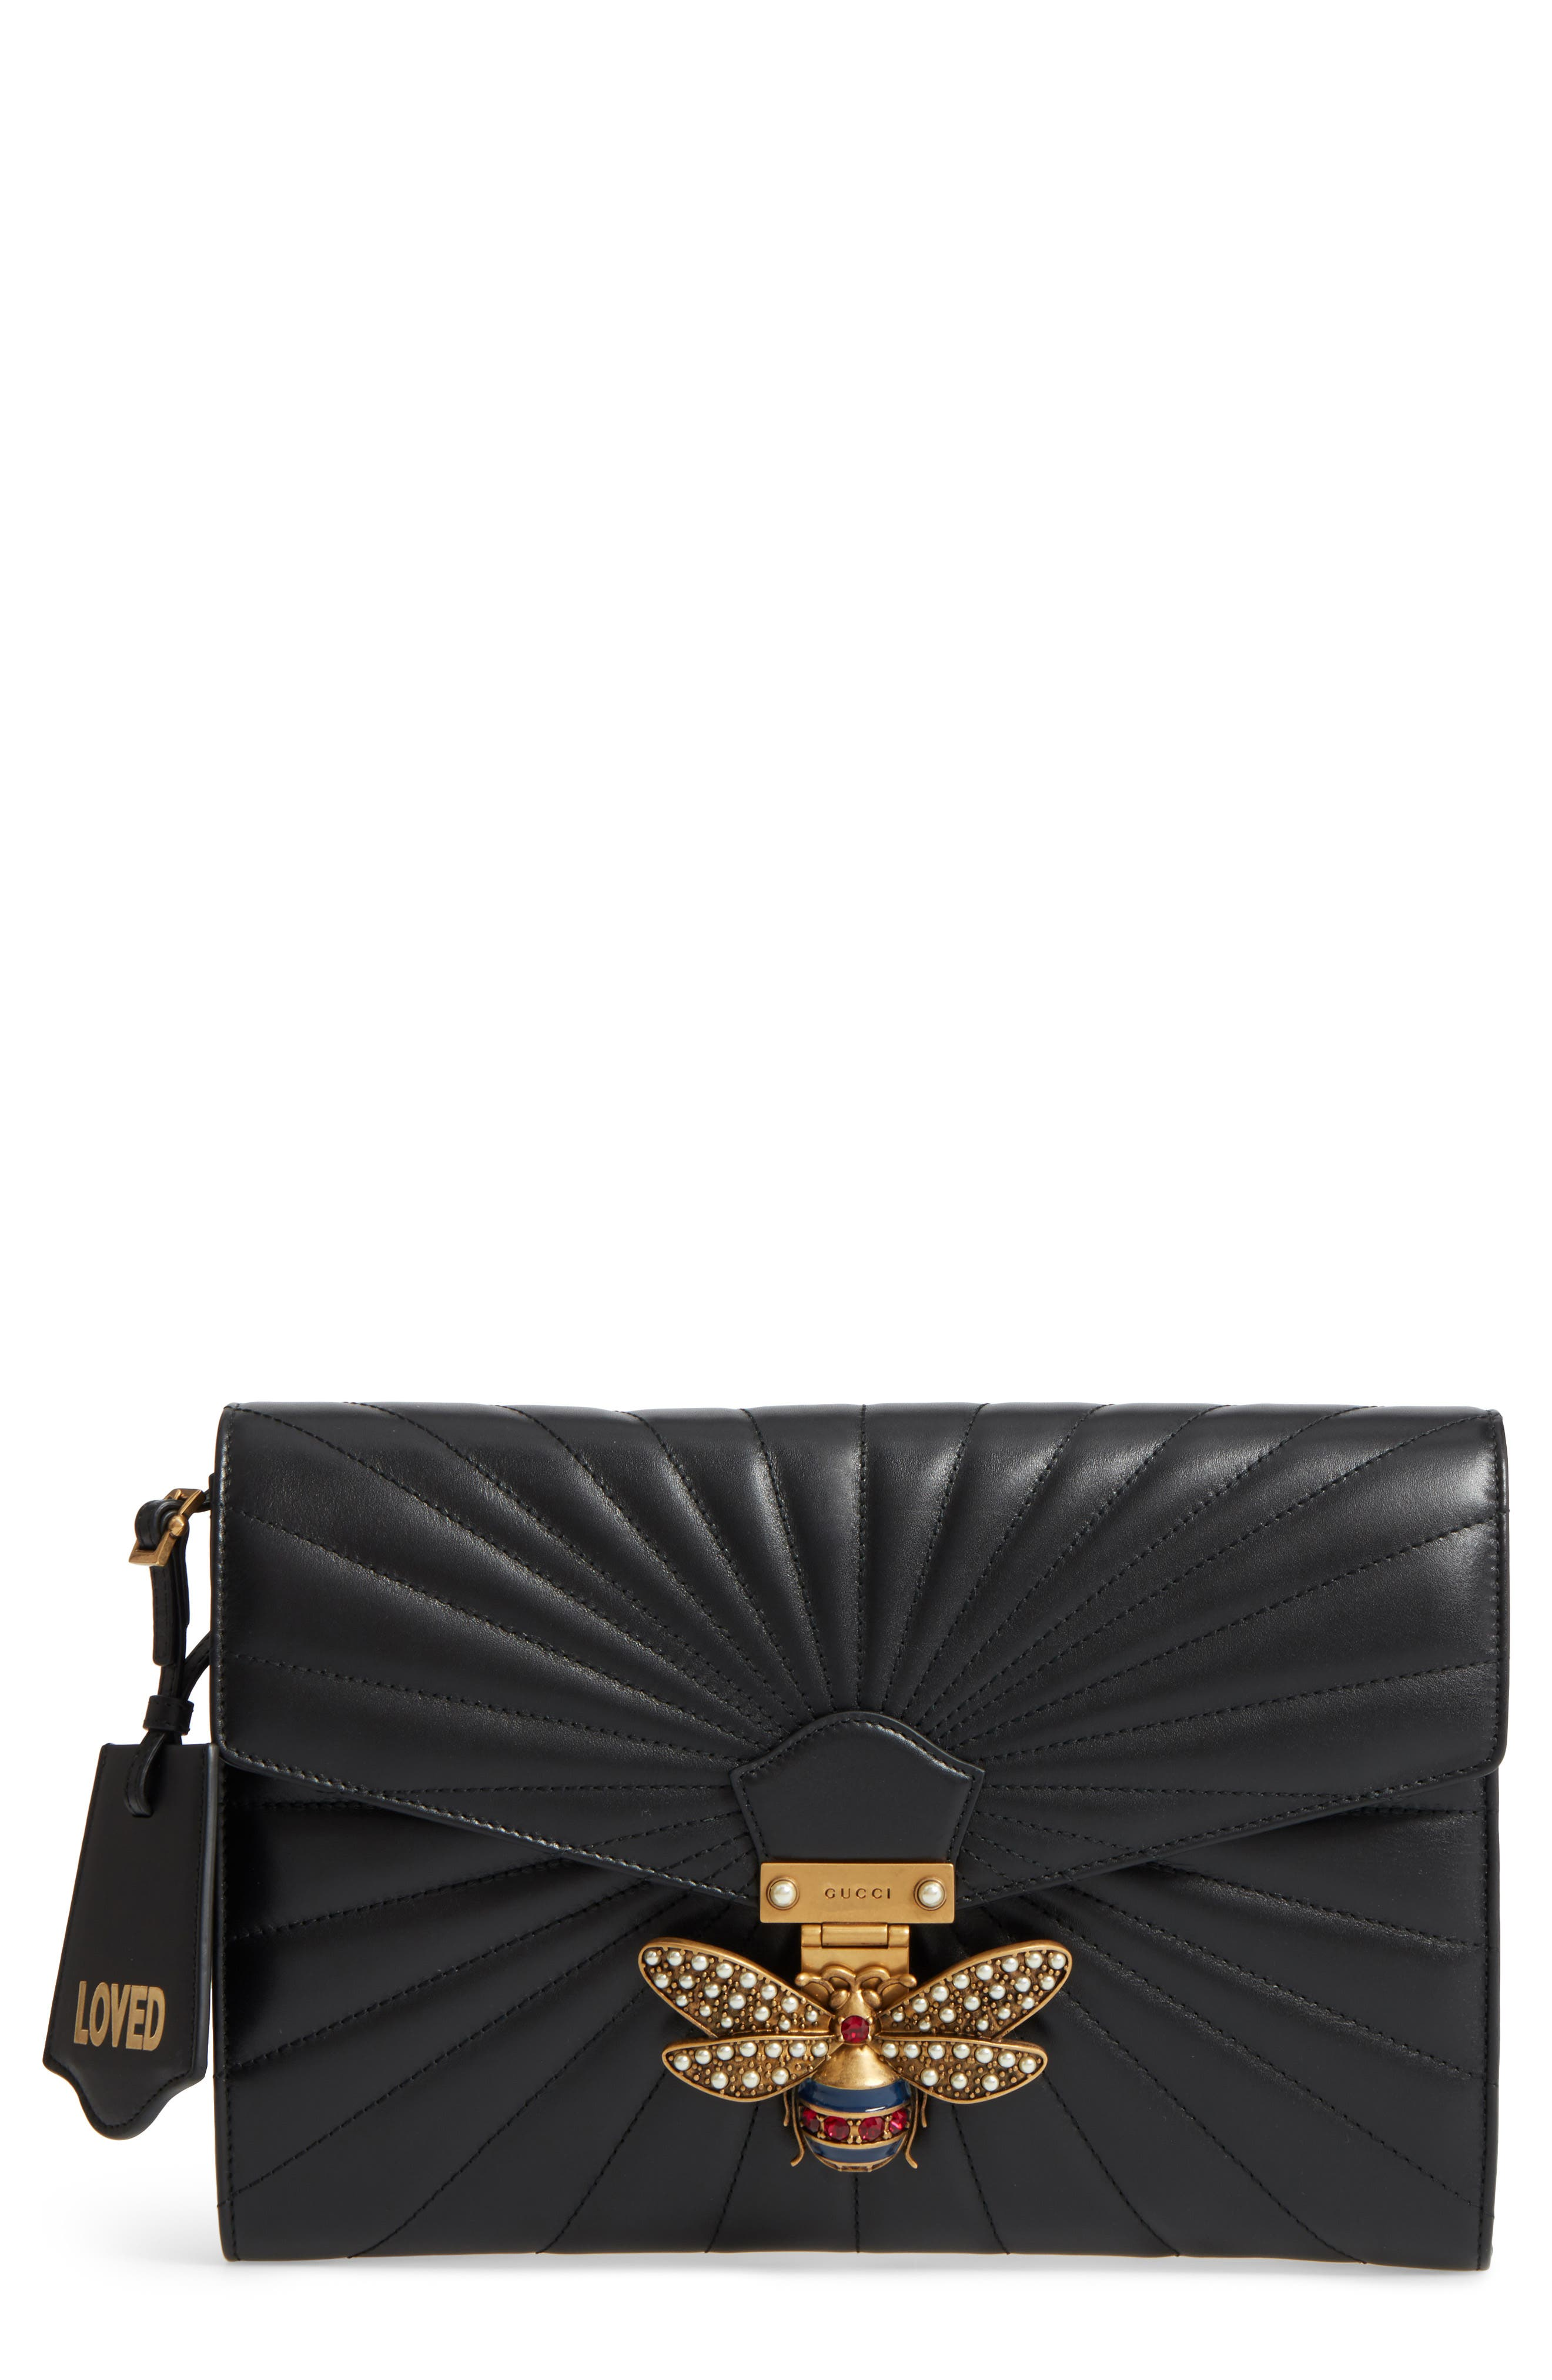 Alternate Image 1 Selected - Gucci Queen Margaret Matelassé Leather Clutch